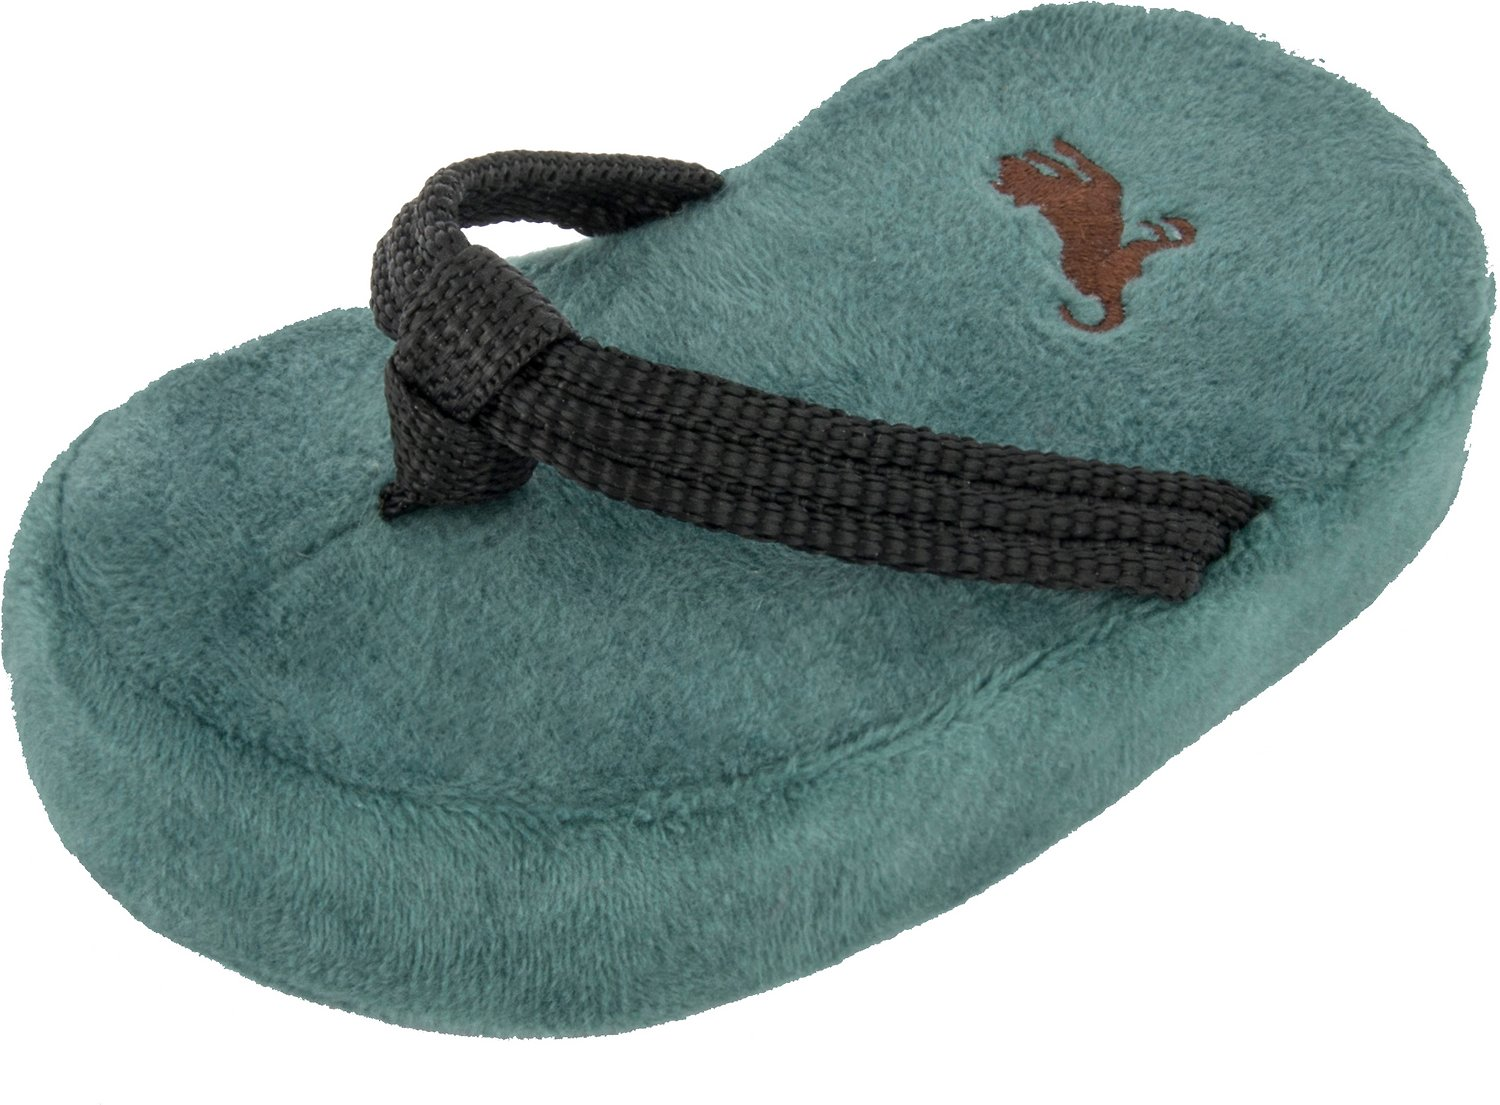 P.L.A.Y. Pet Lifestyle and You Globetrotter Plush Slipper Dog Toy